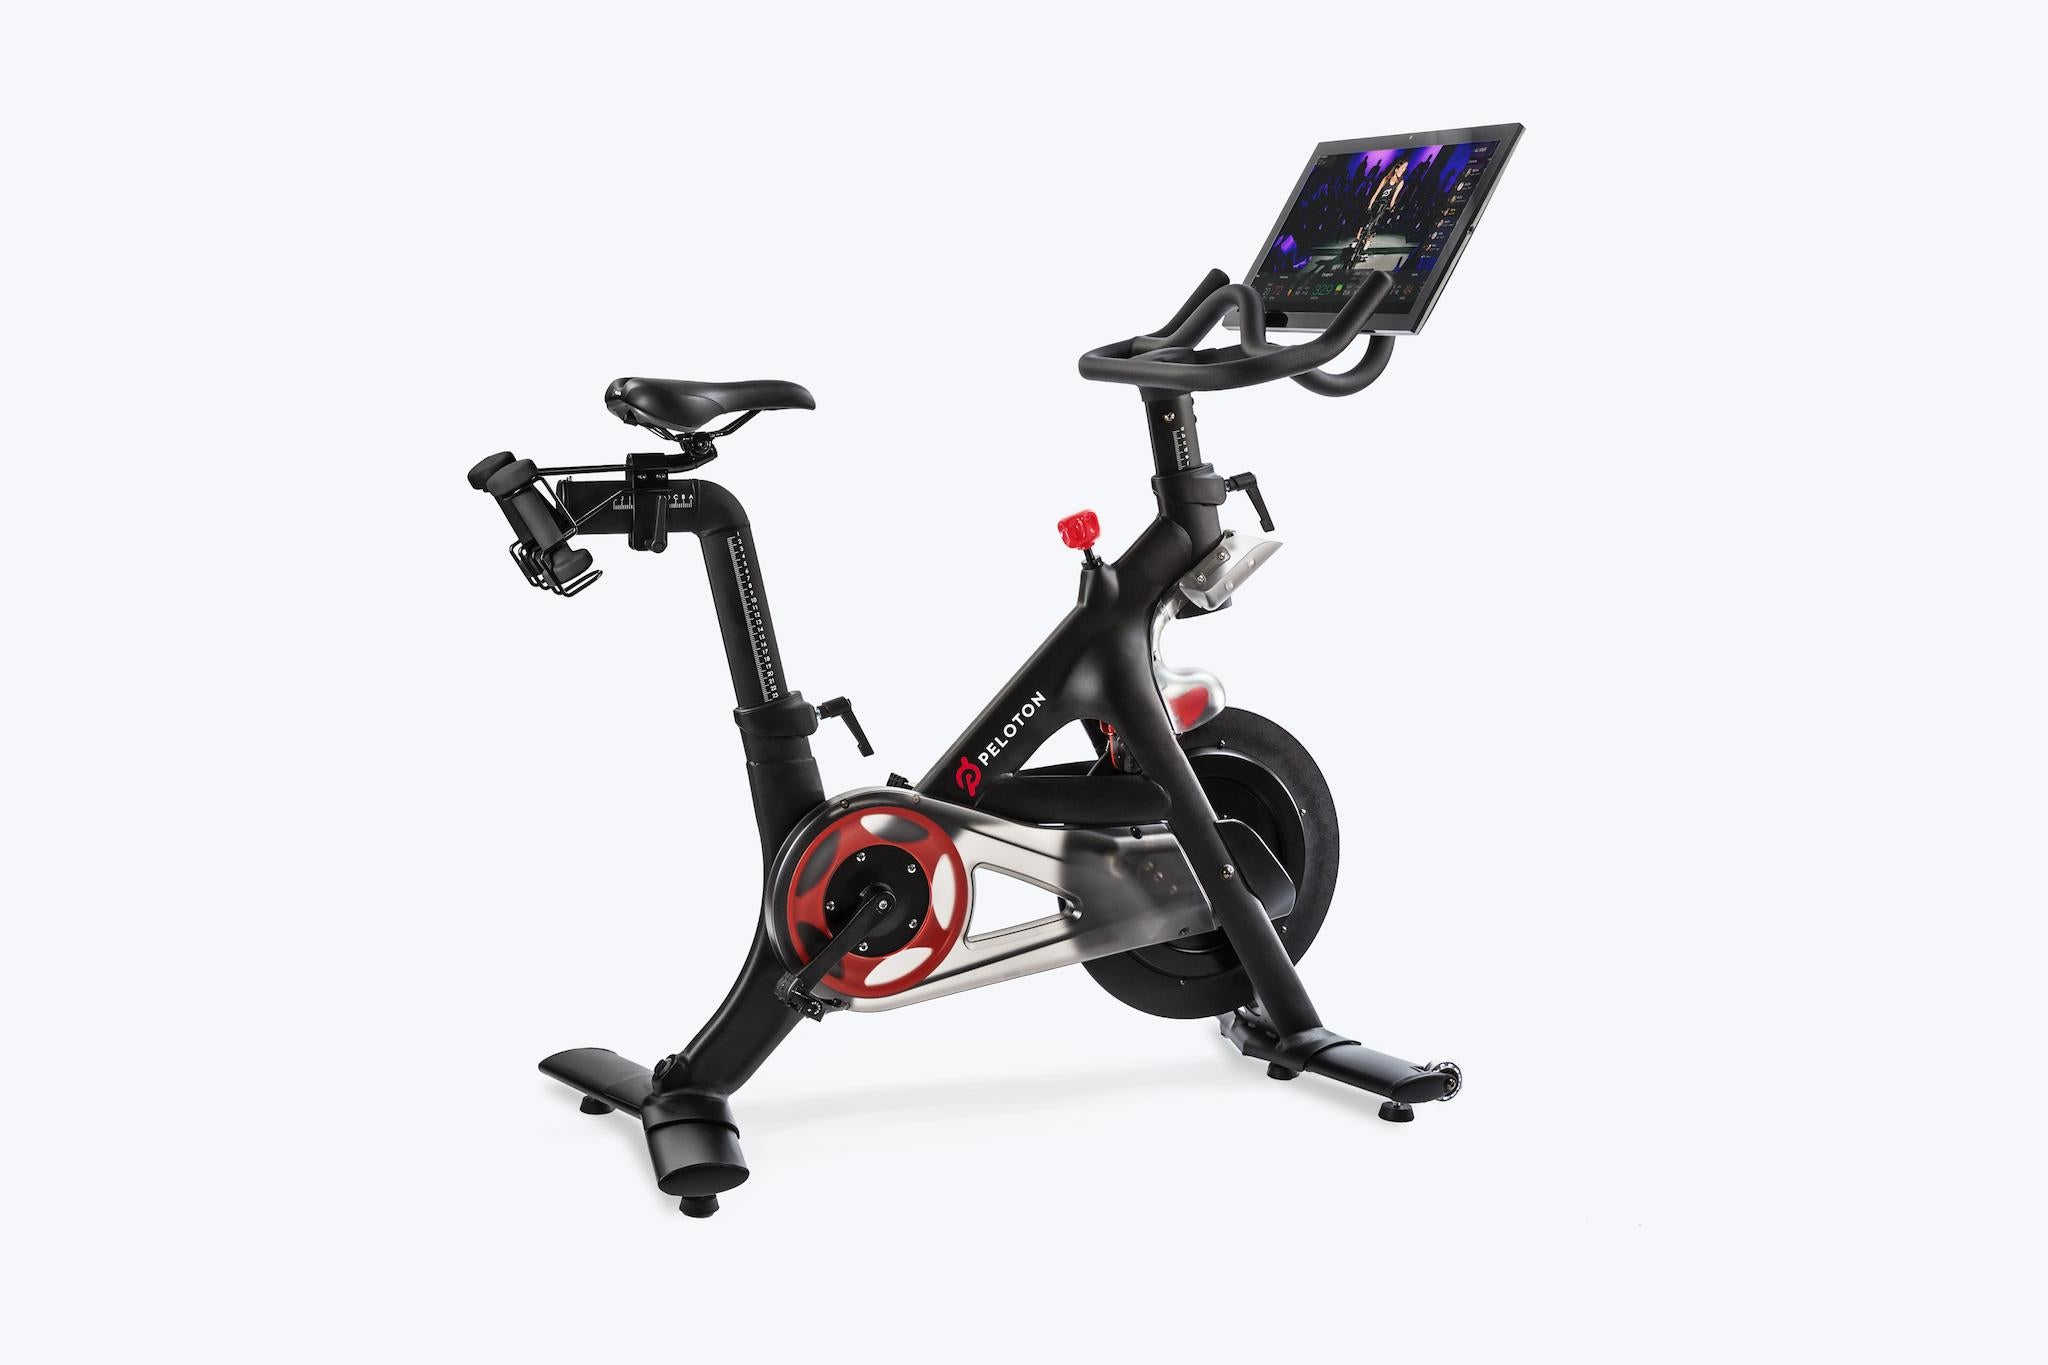 Peloton Bike Review The Best Way To Work Out At Home And Perhaps The Future Of Fitness The Independent The Independent